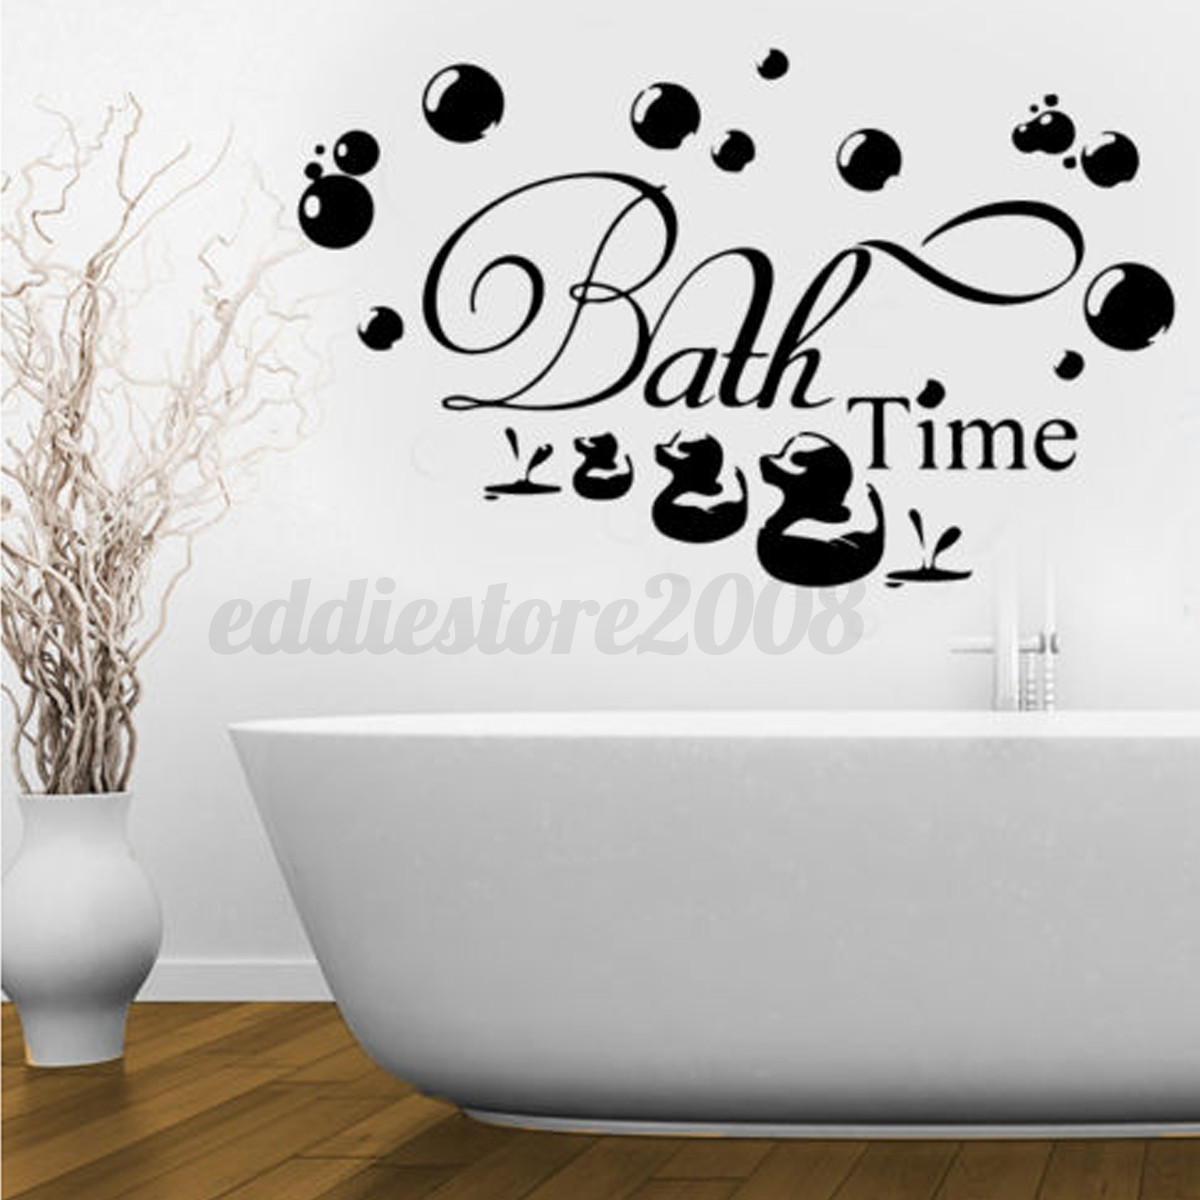 Bathroom Wall Art Bubbles : Bath time ducks bubbles wall stickers decal removable